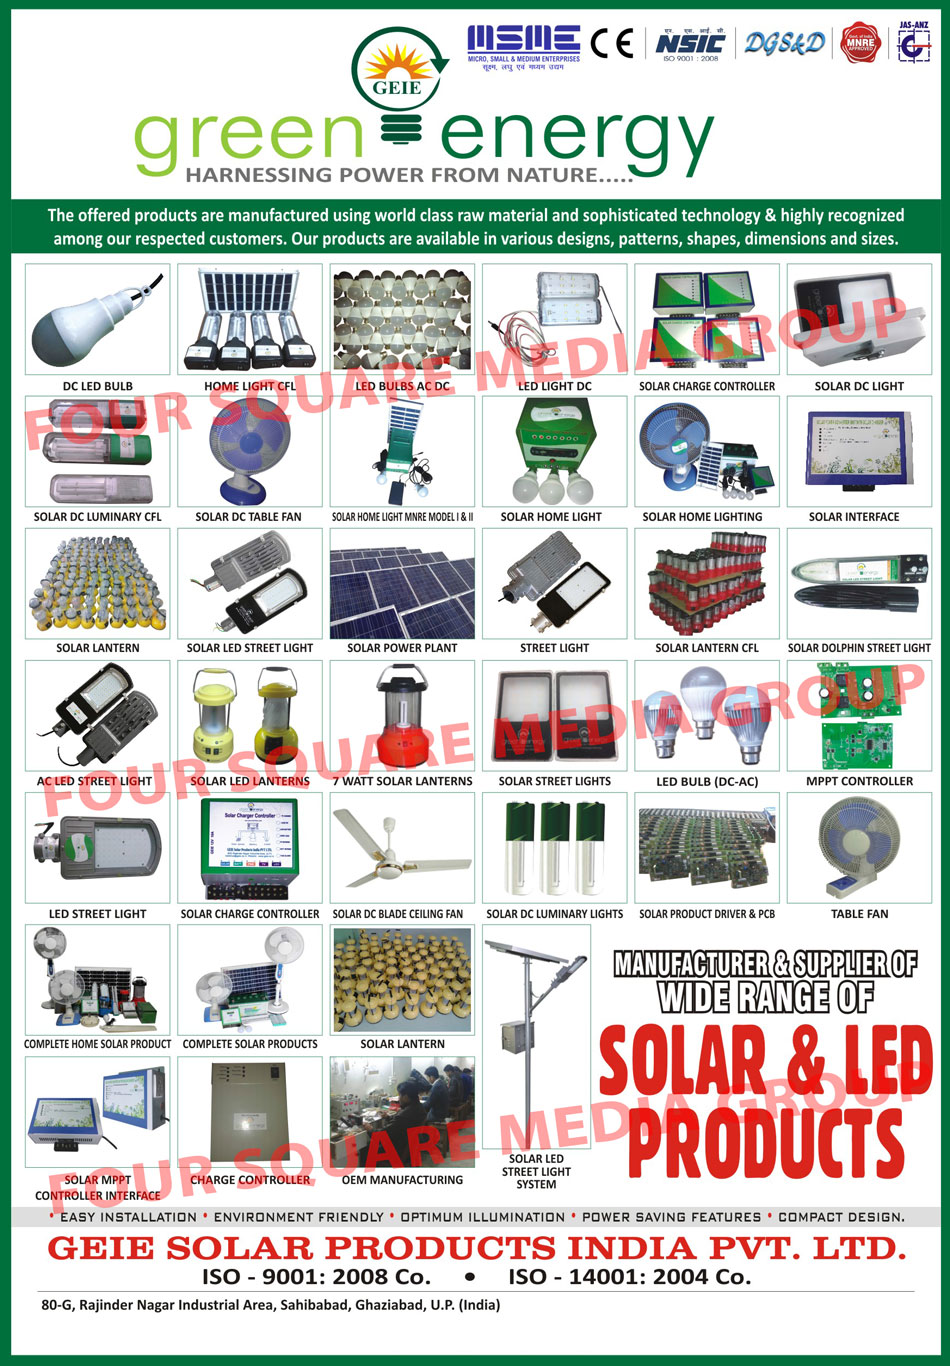 Led Lights Bulbs Solar Lanterns Cfl Lantern Circuit Printed Boards